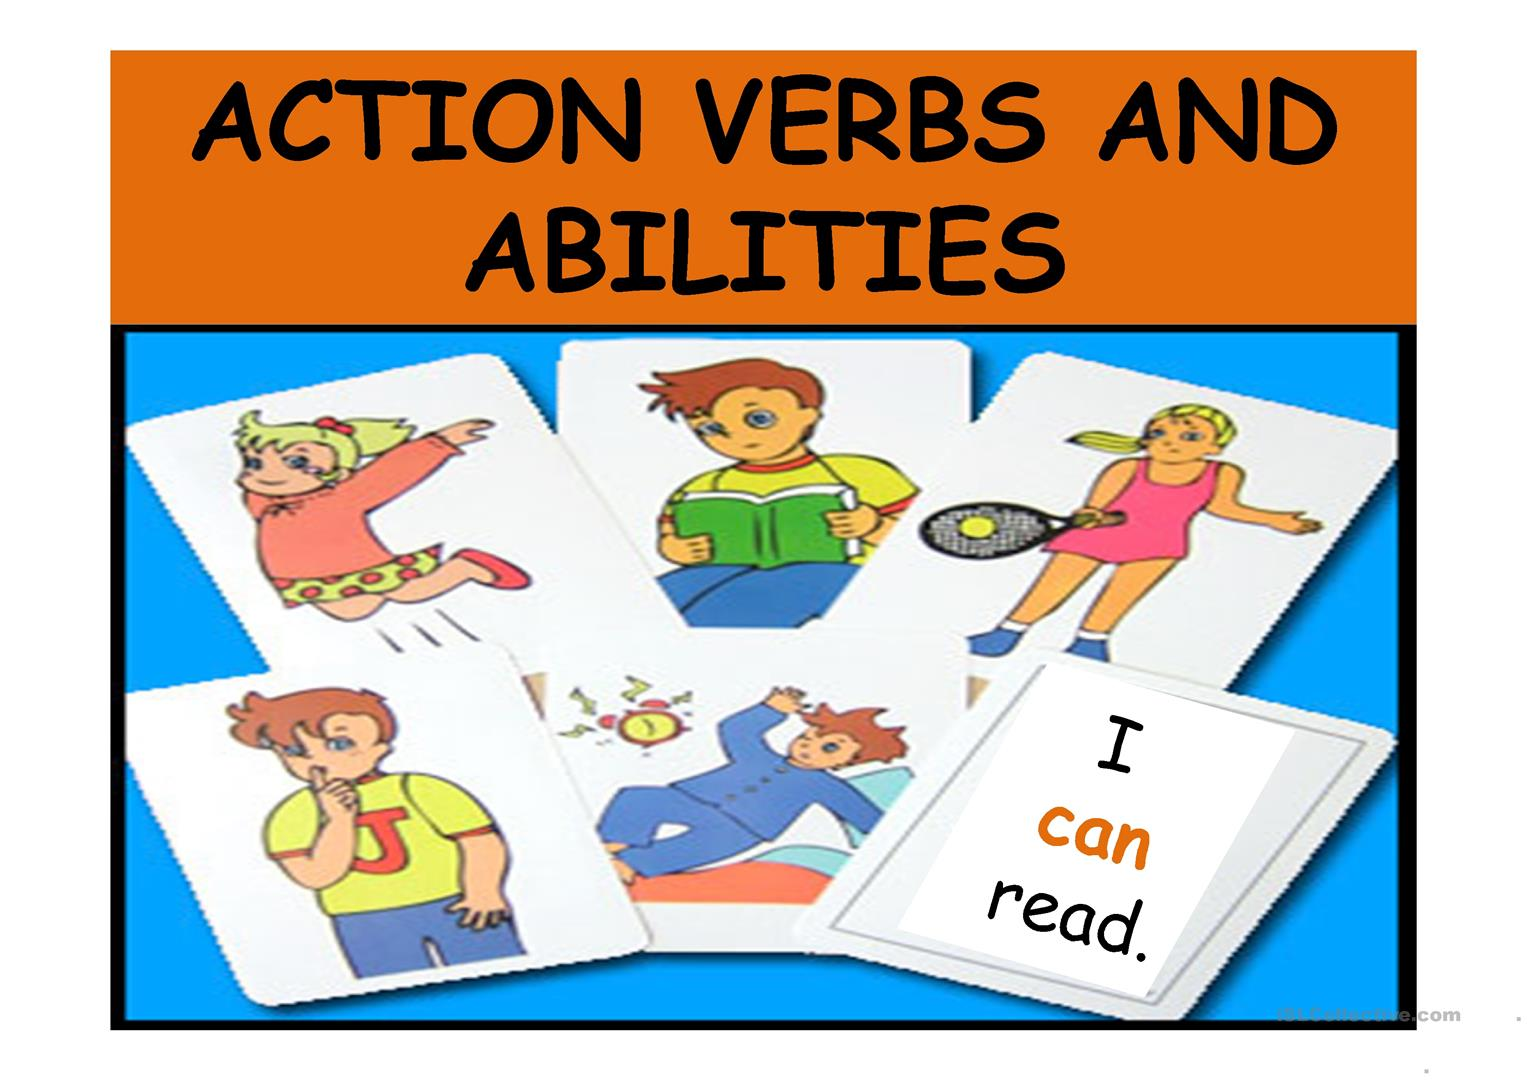 Action Verbs And Abilities